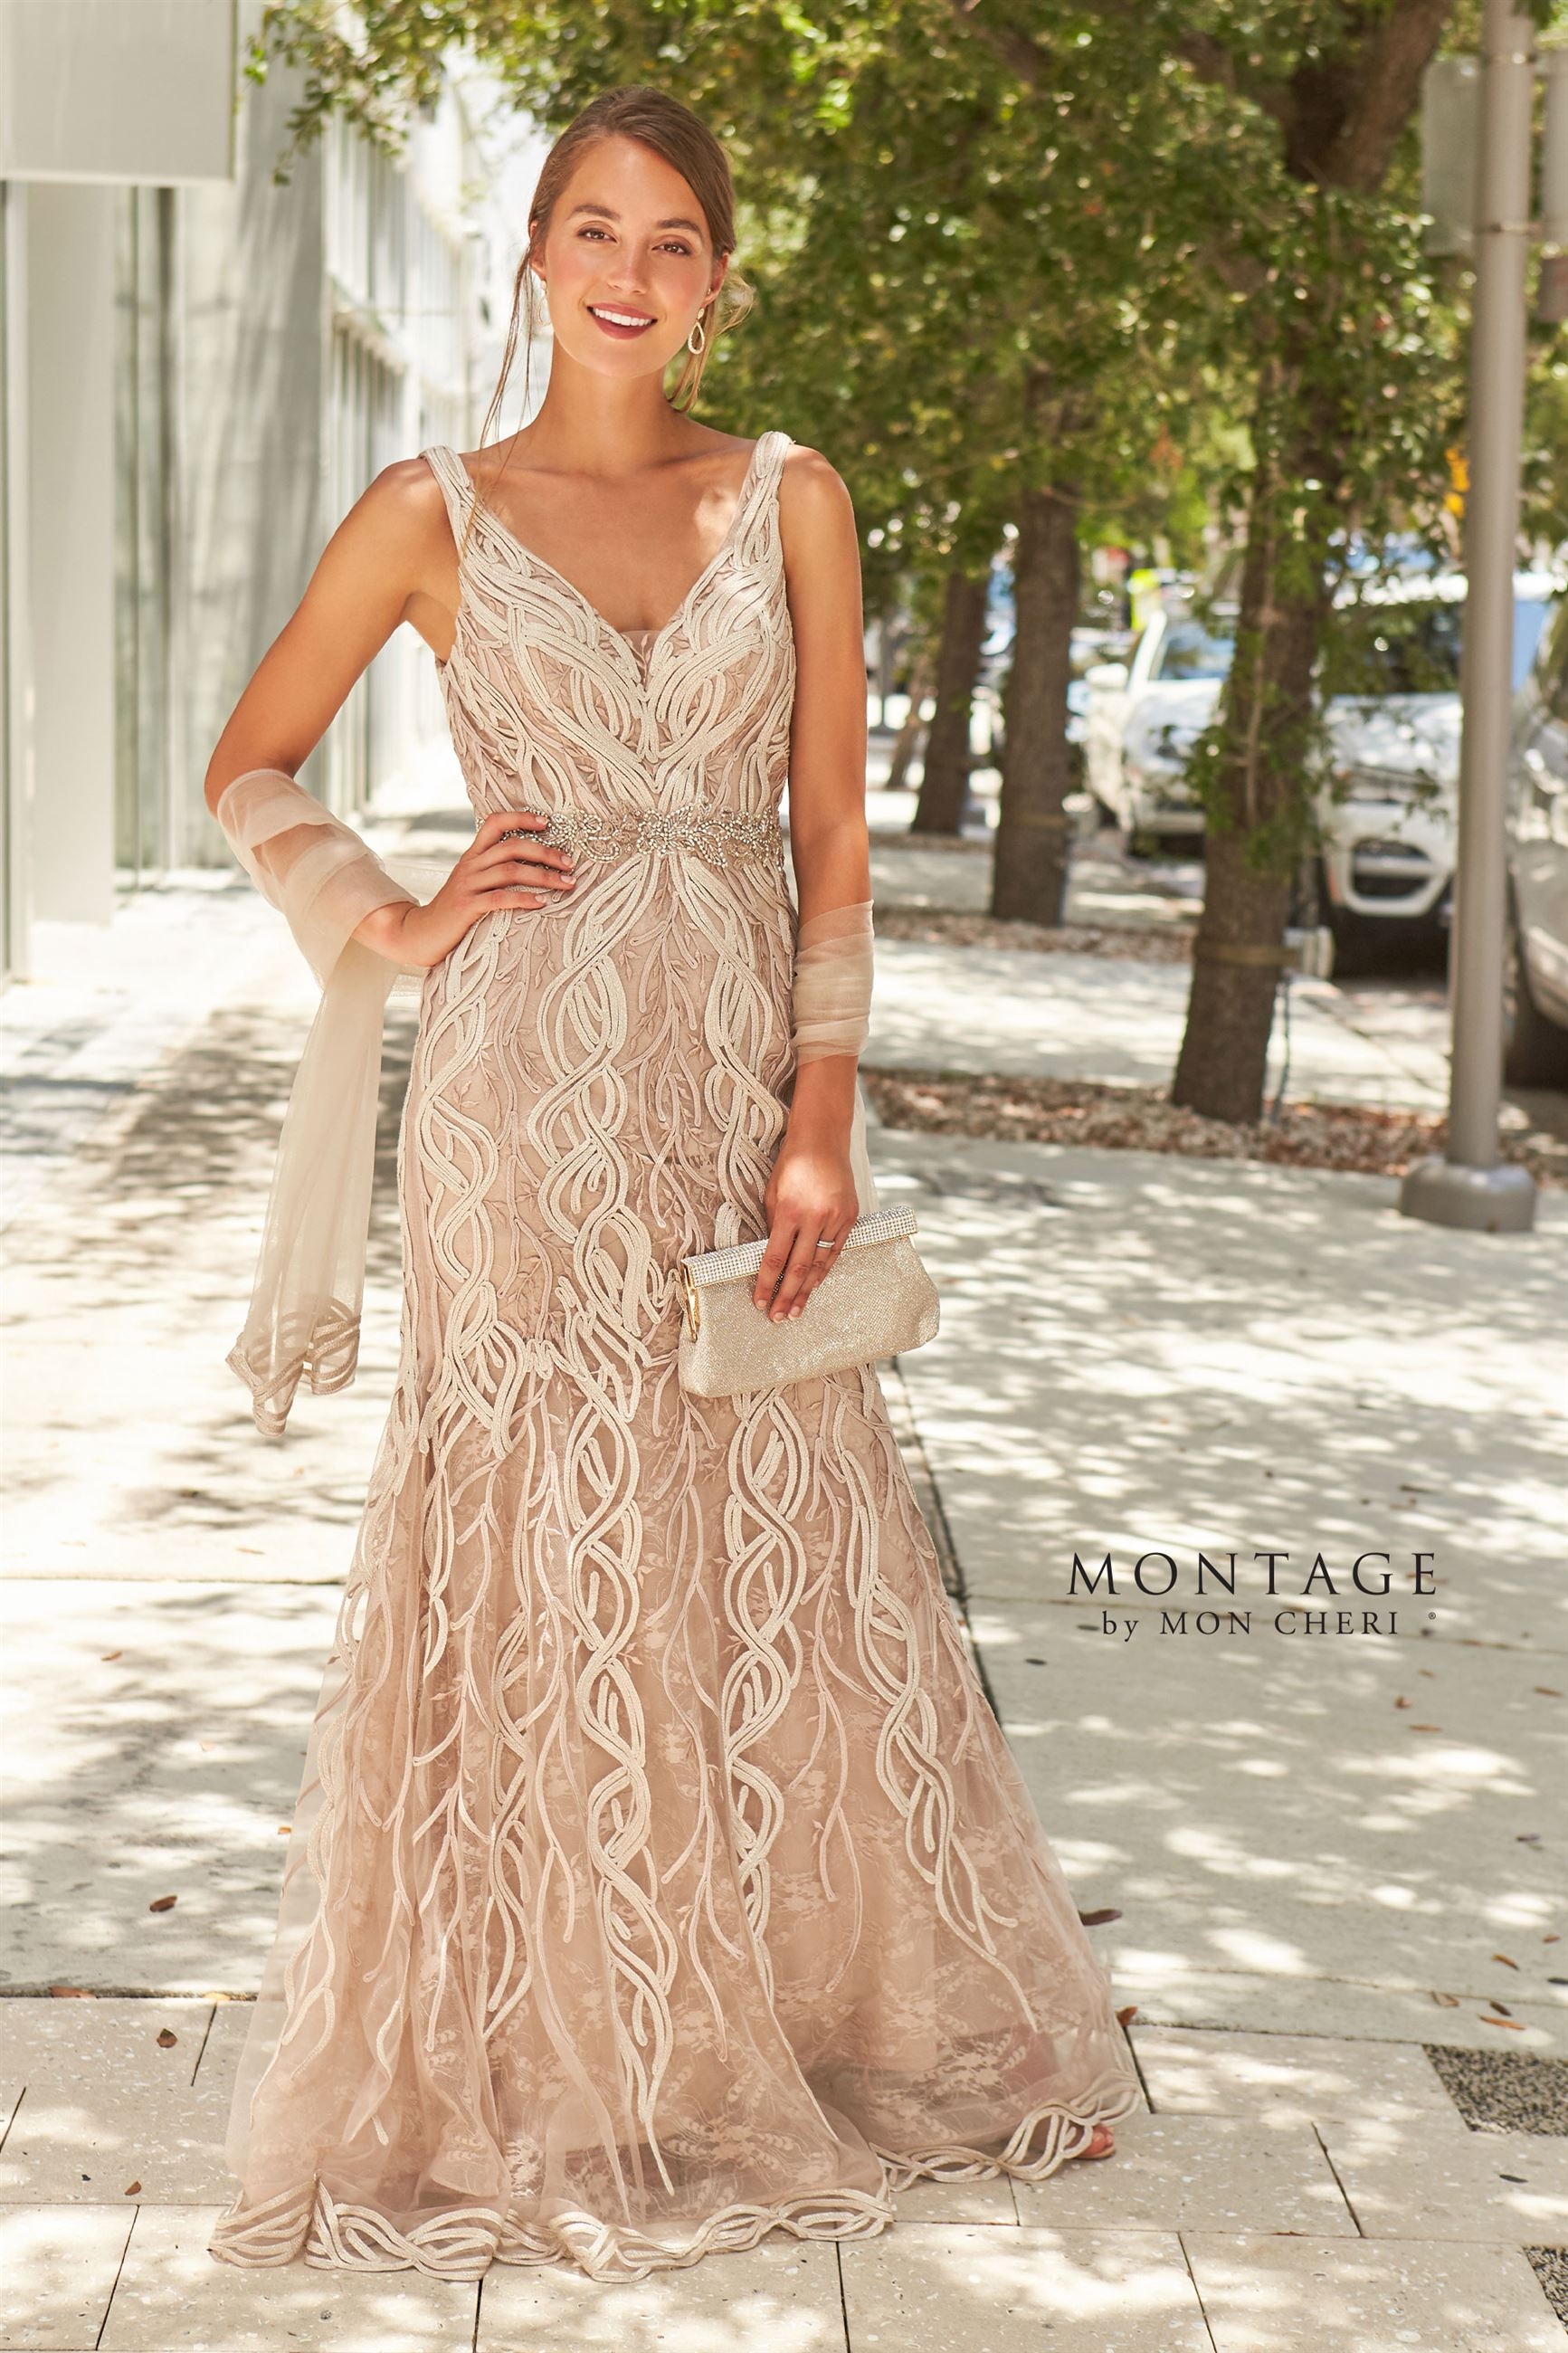 Mother Of The Bride Dresses From Mon Cheri Ivonne D Cameron Blake Montage Social Occasions